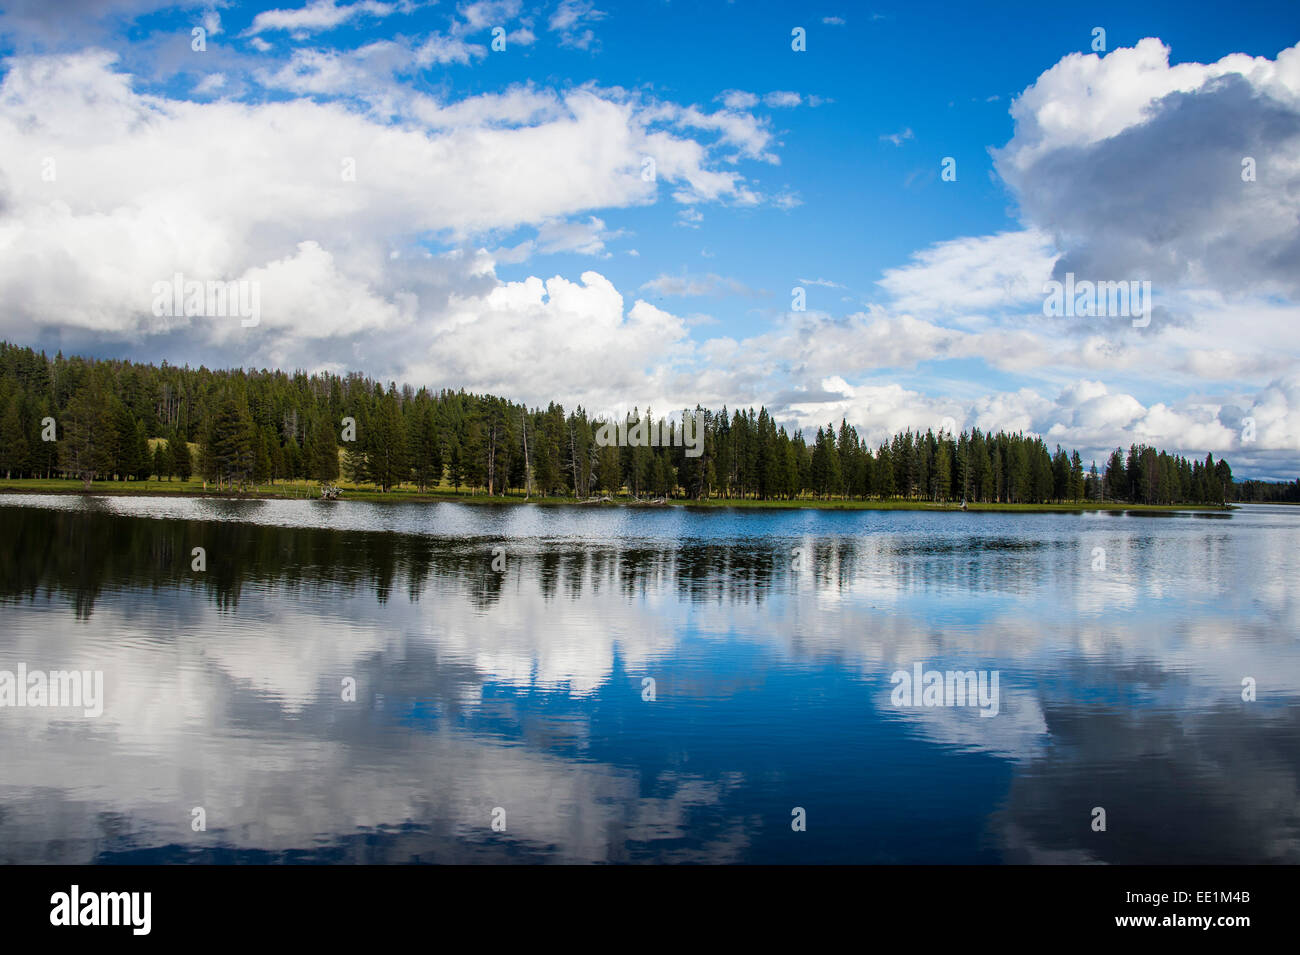 Clouds reflecting in the Yellowstone River, Yellowstone National Park, UNESCO World Heritage Site, Wyoming, USA - Stock Image